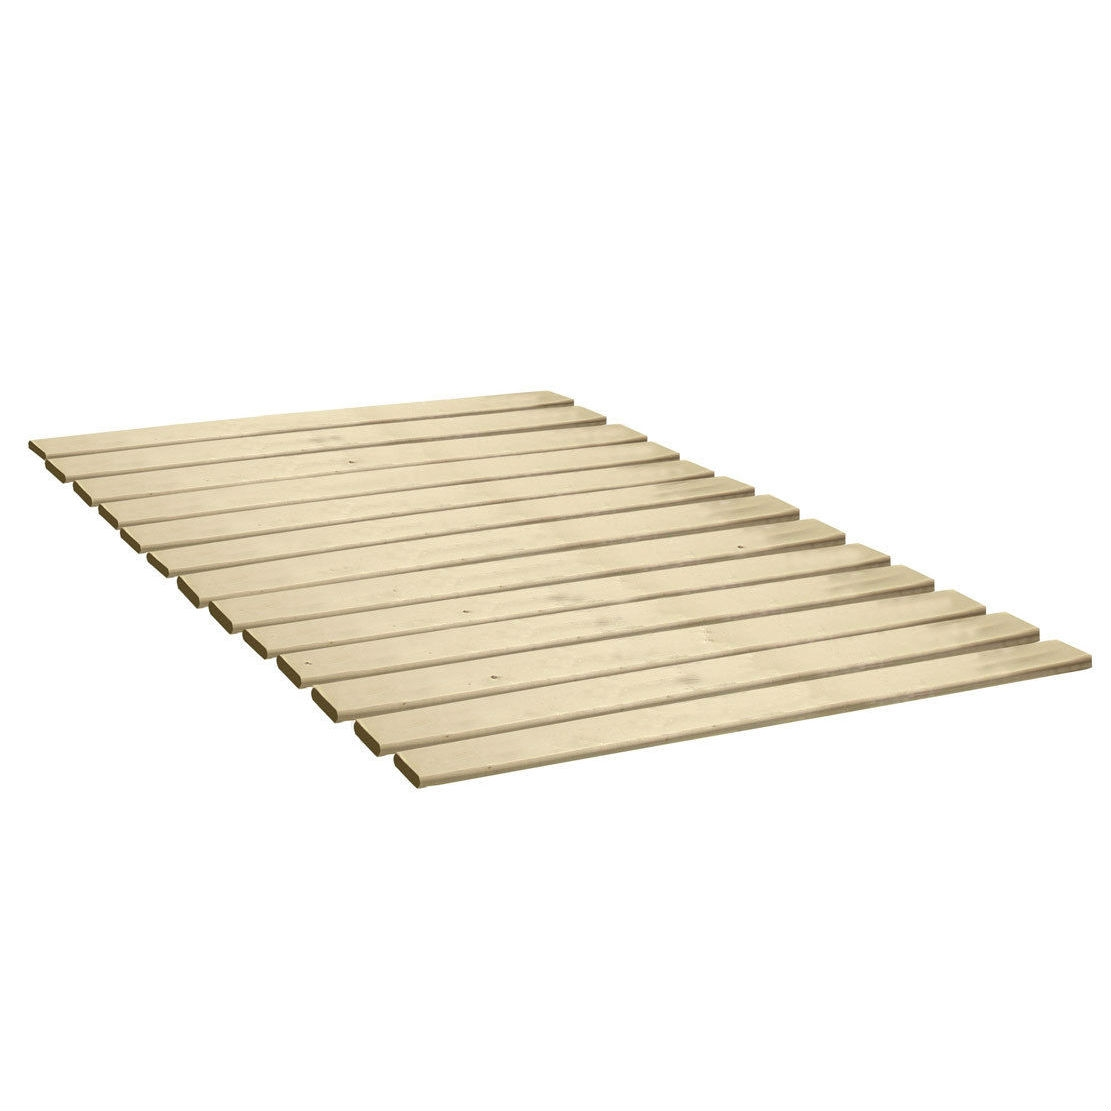 Wood Slats For Bed Frame